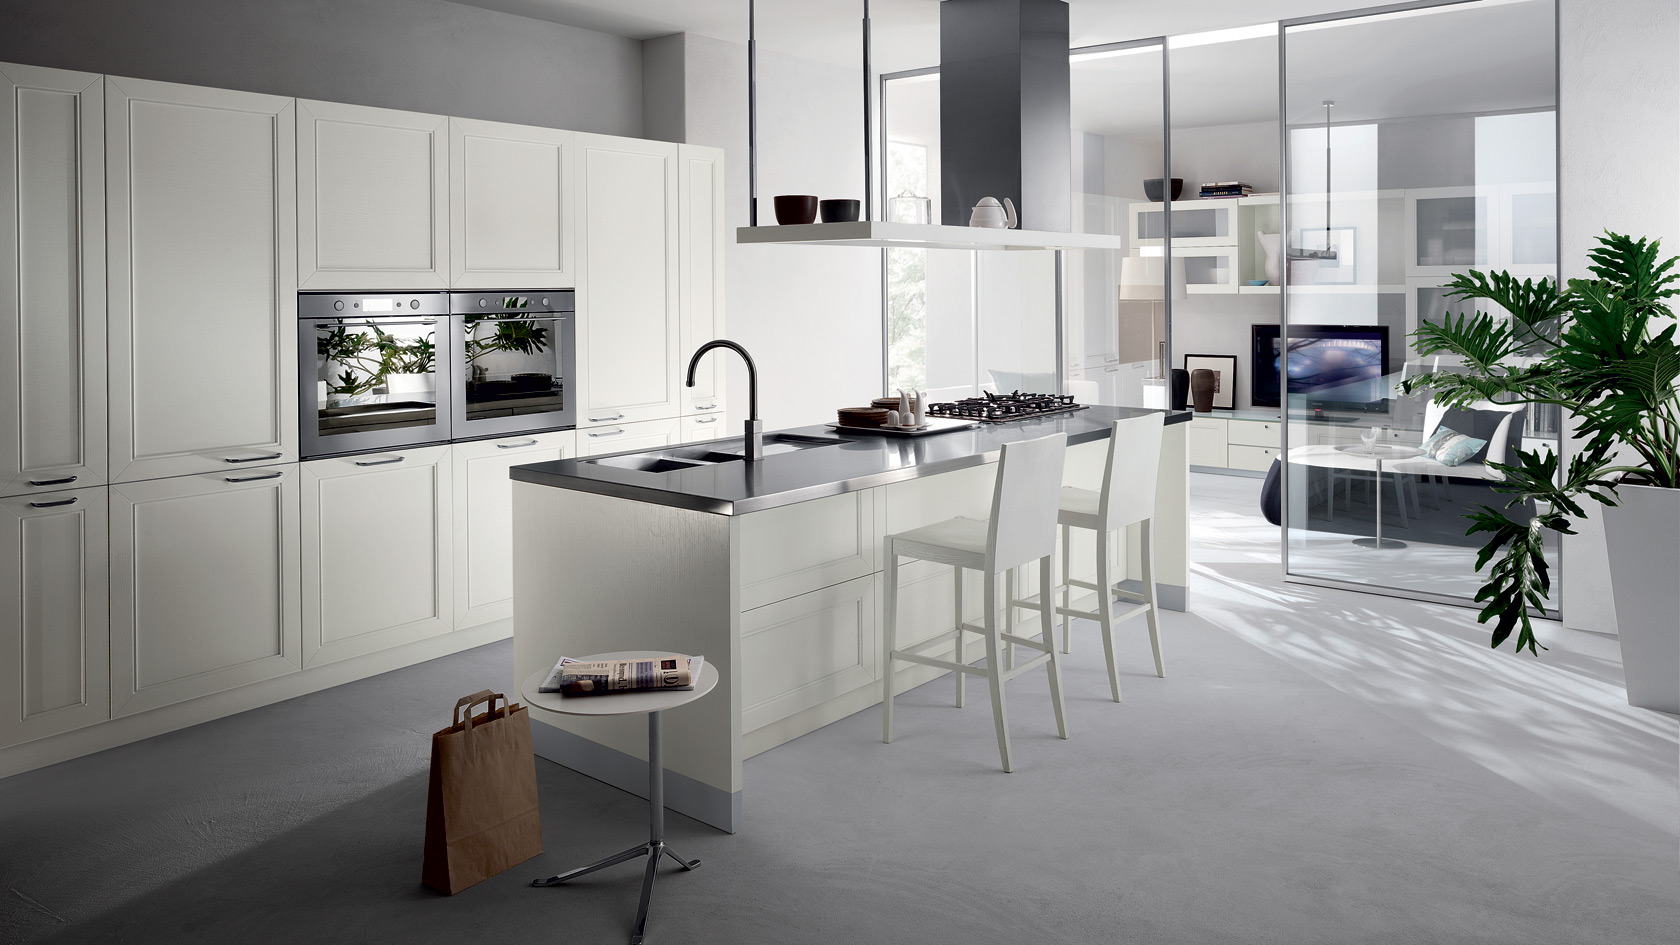 Awesome Cucine Moderne Scavolini Prezzi Contemporary - Ideas ...